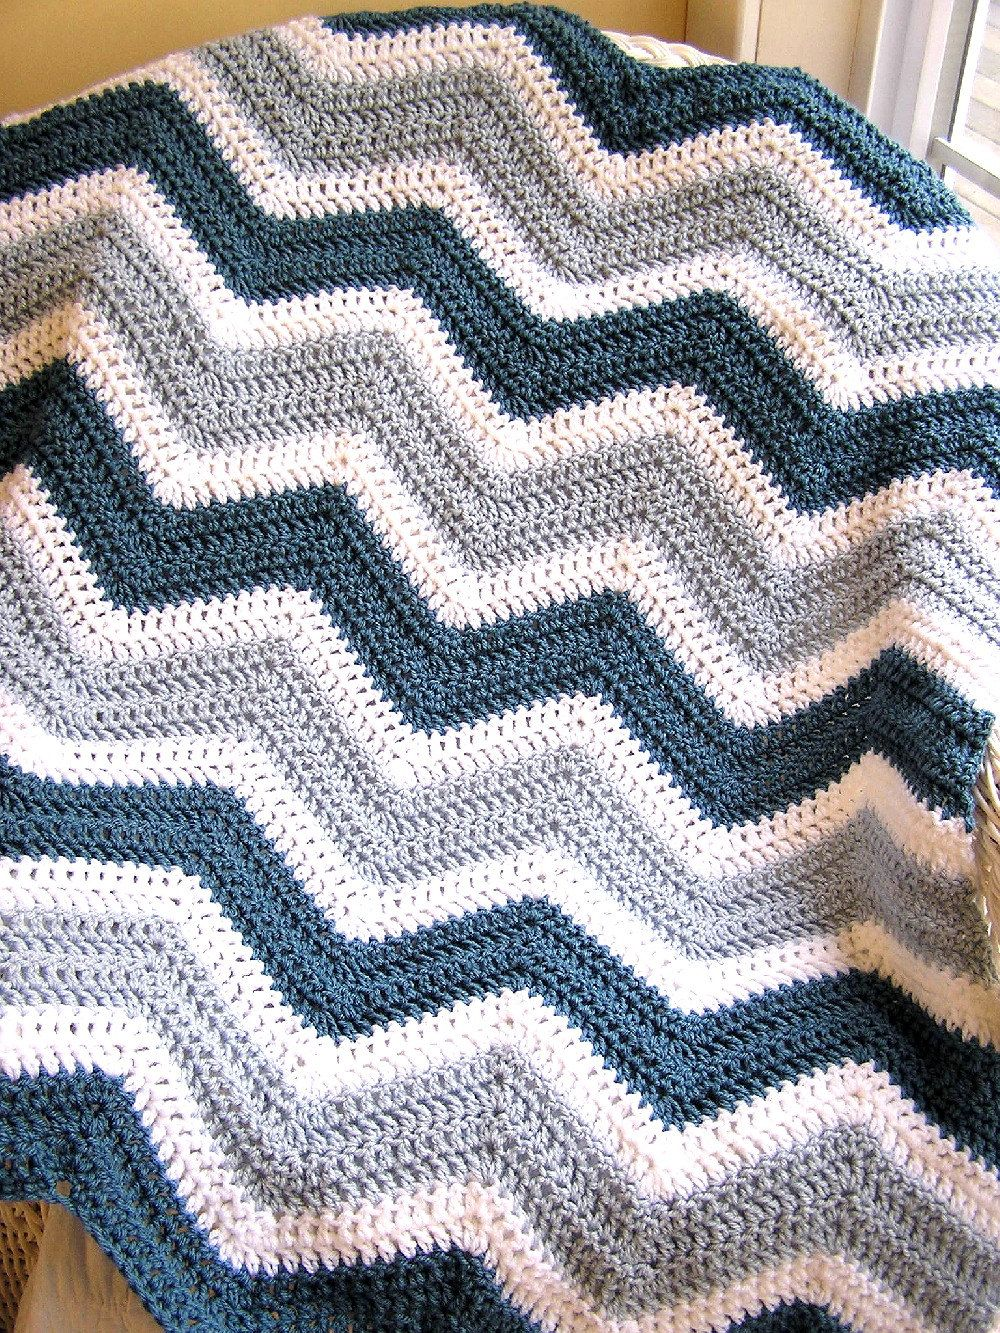 chevron crochet knit baby toddler afghan blanket wrap lap wheelchair ...